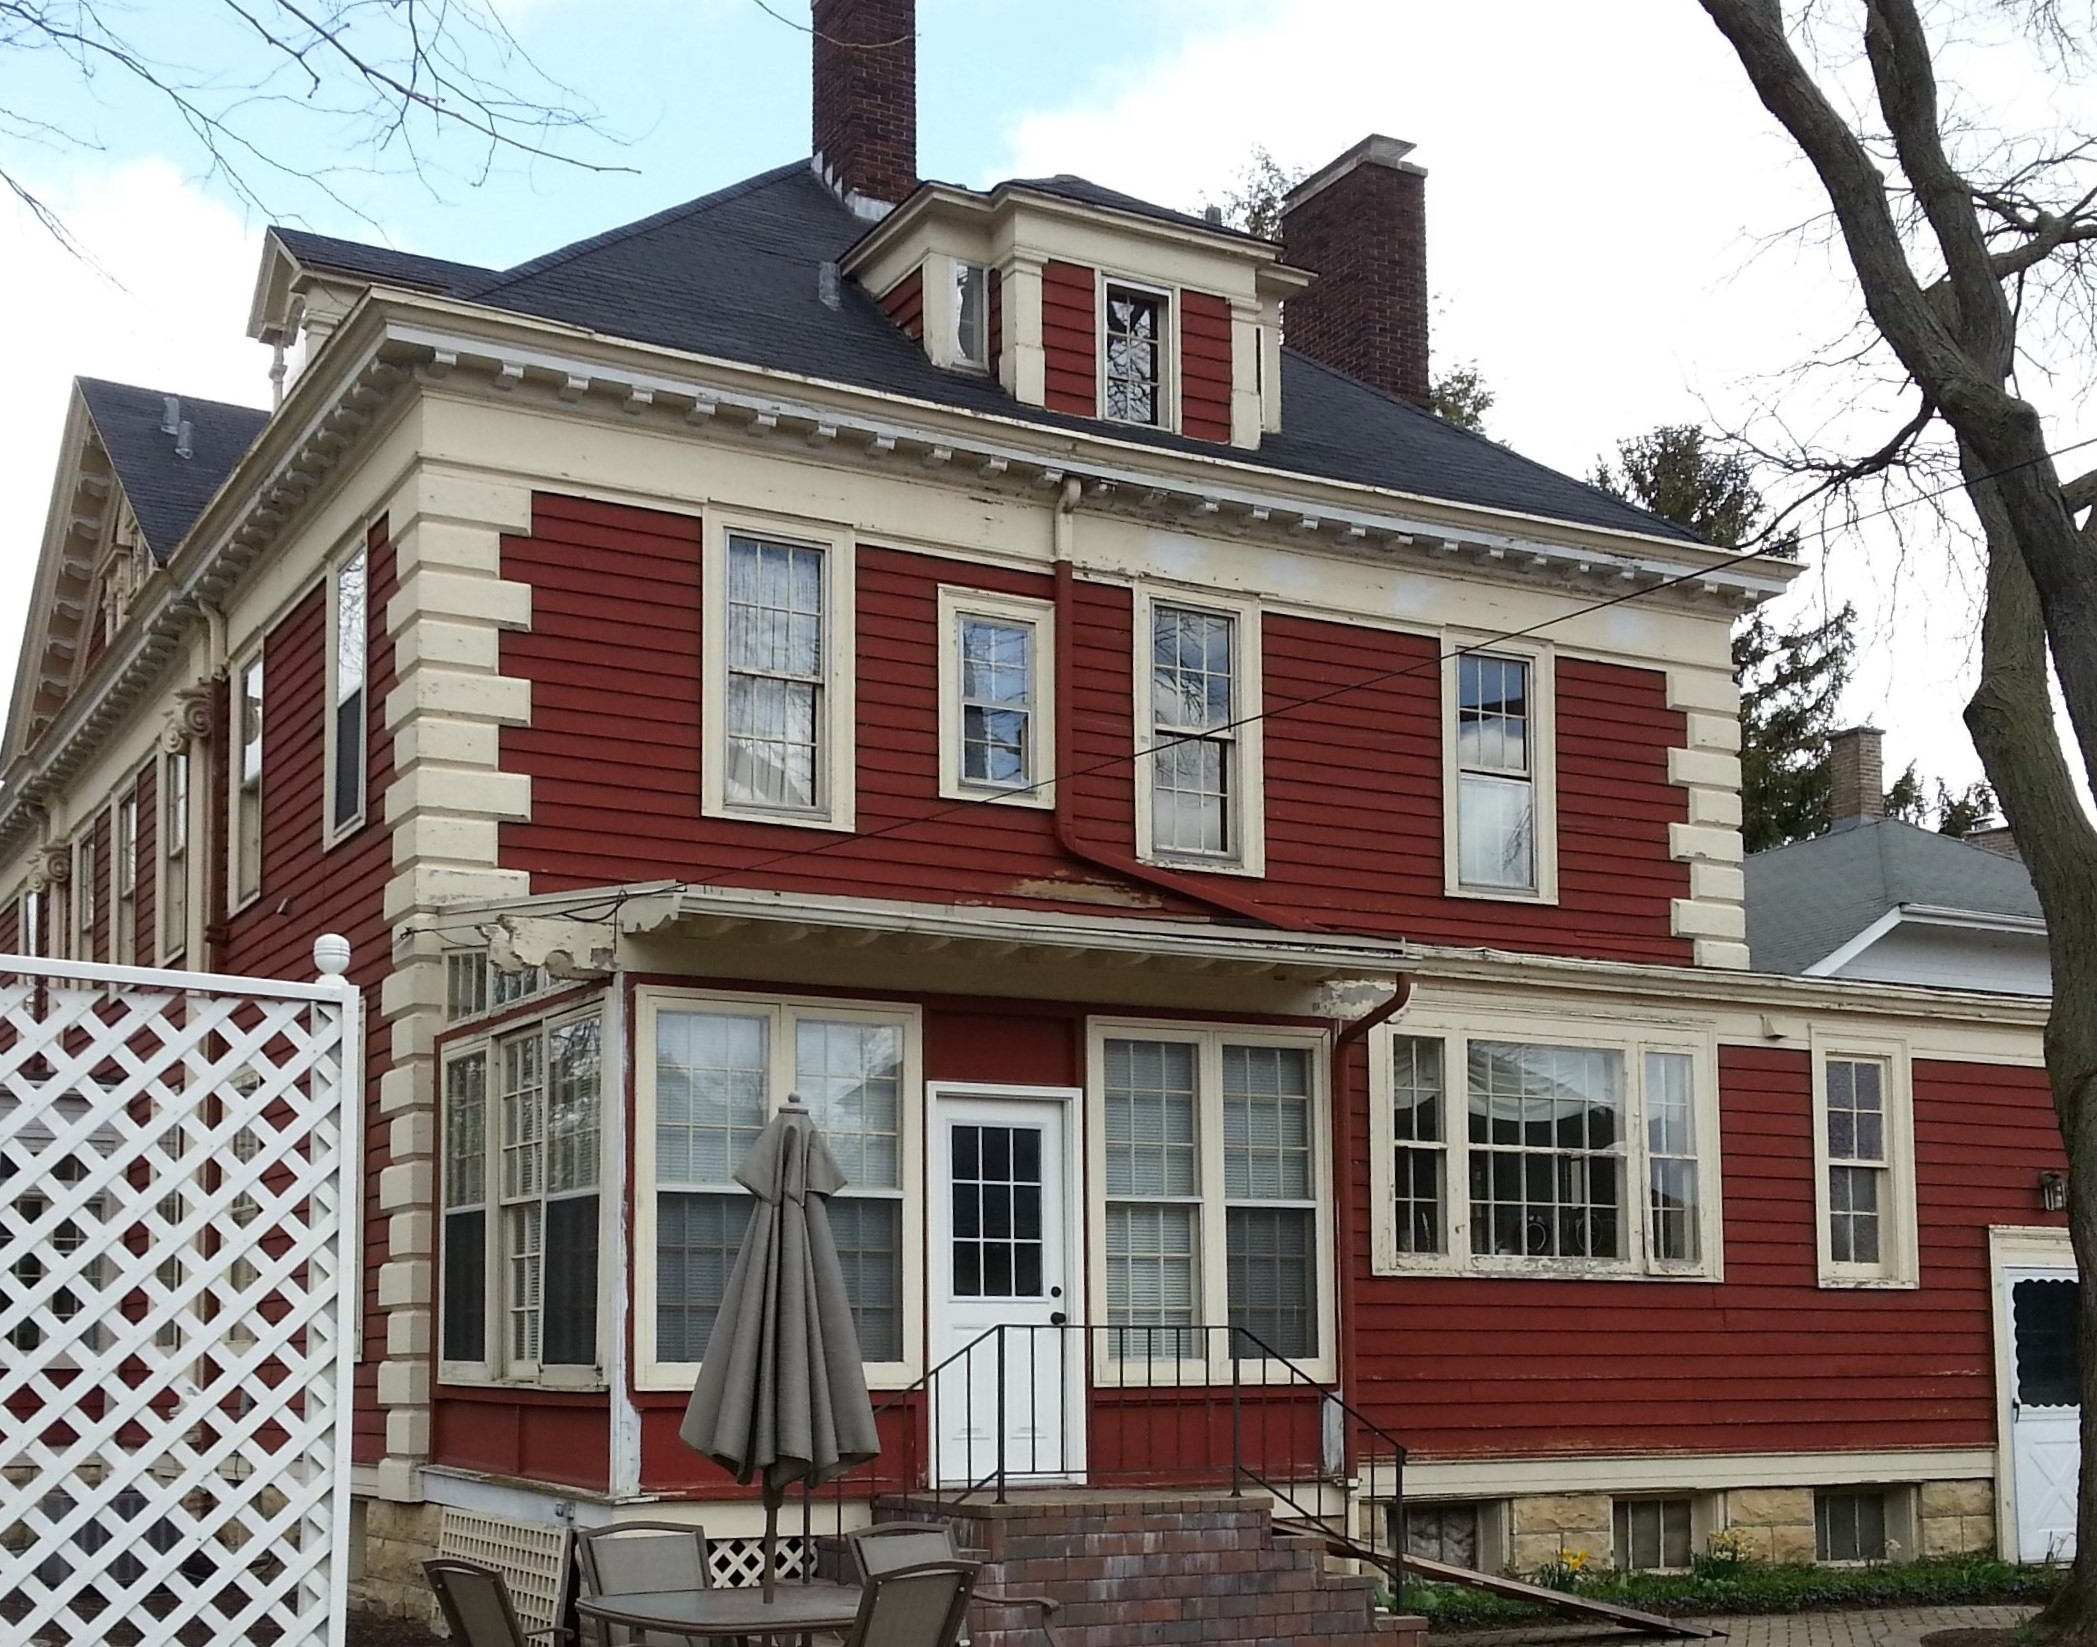 Exterior painting for aurora historic home by rhino shield - Average cost for exterior house painting ...